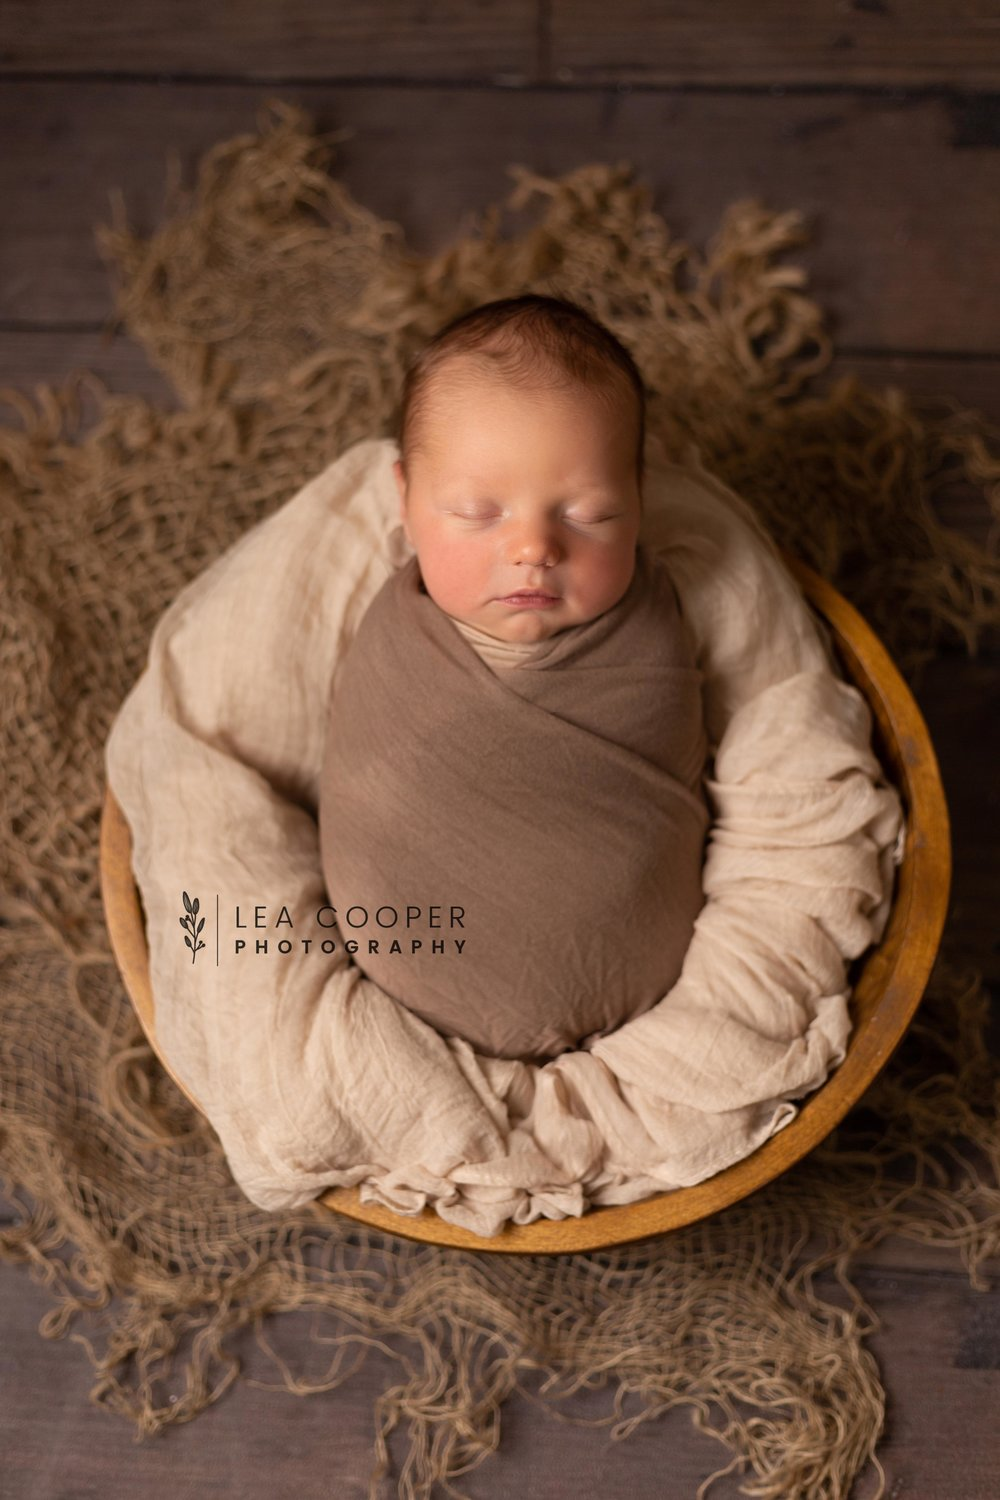 newborn-photography-willenhall-lea-cooper-photography-wolverhampton-baby-photographer-birmingham-west-midlands-uk-oliver--8.jpg